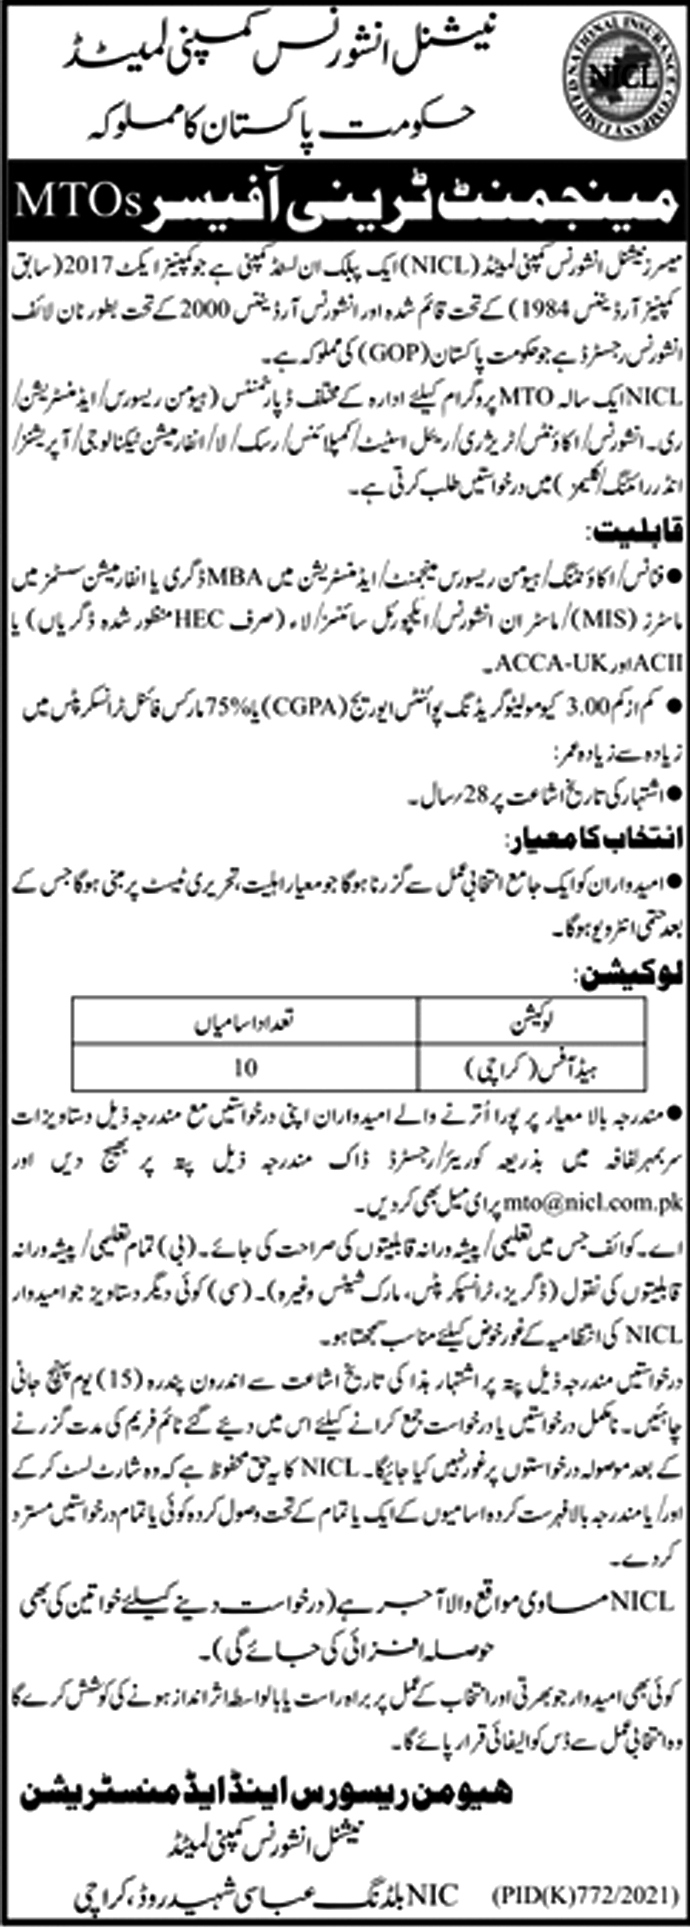 National Insurance Company Limited's NICL Latest Jobs For Management Trainee Officers MTO